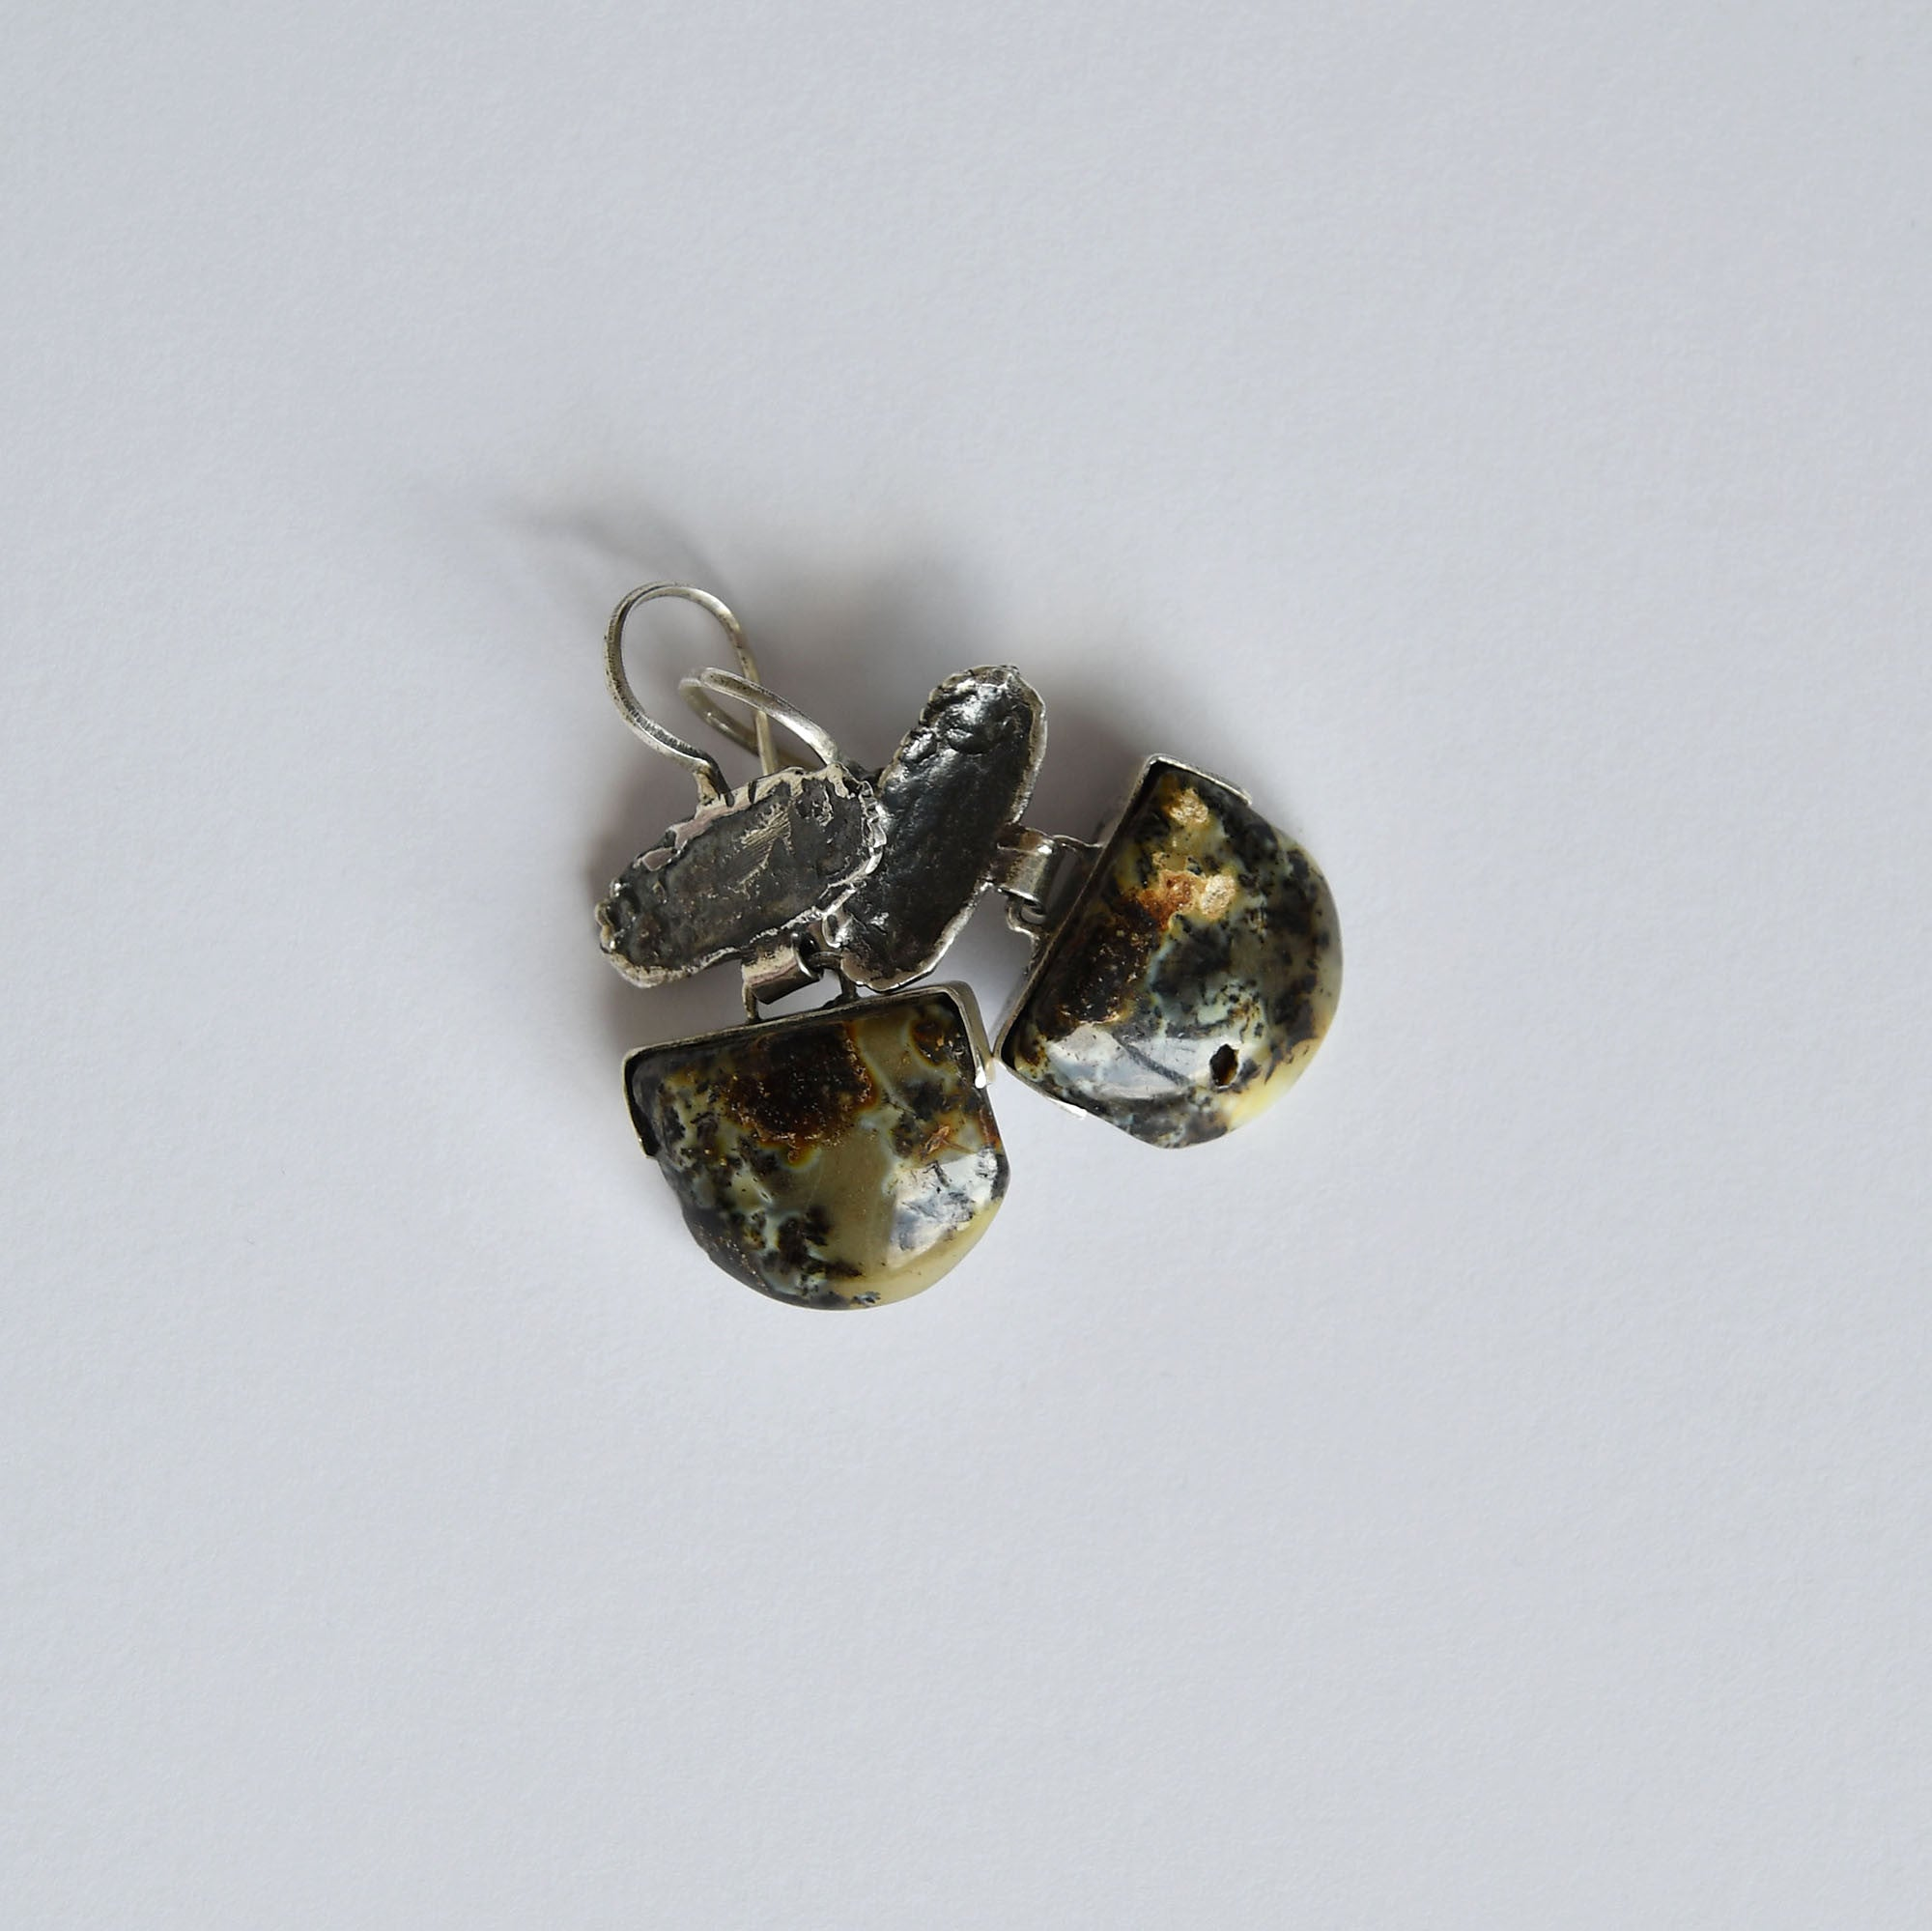 Black amber earrings with green and blue patterns in silver setting